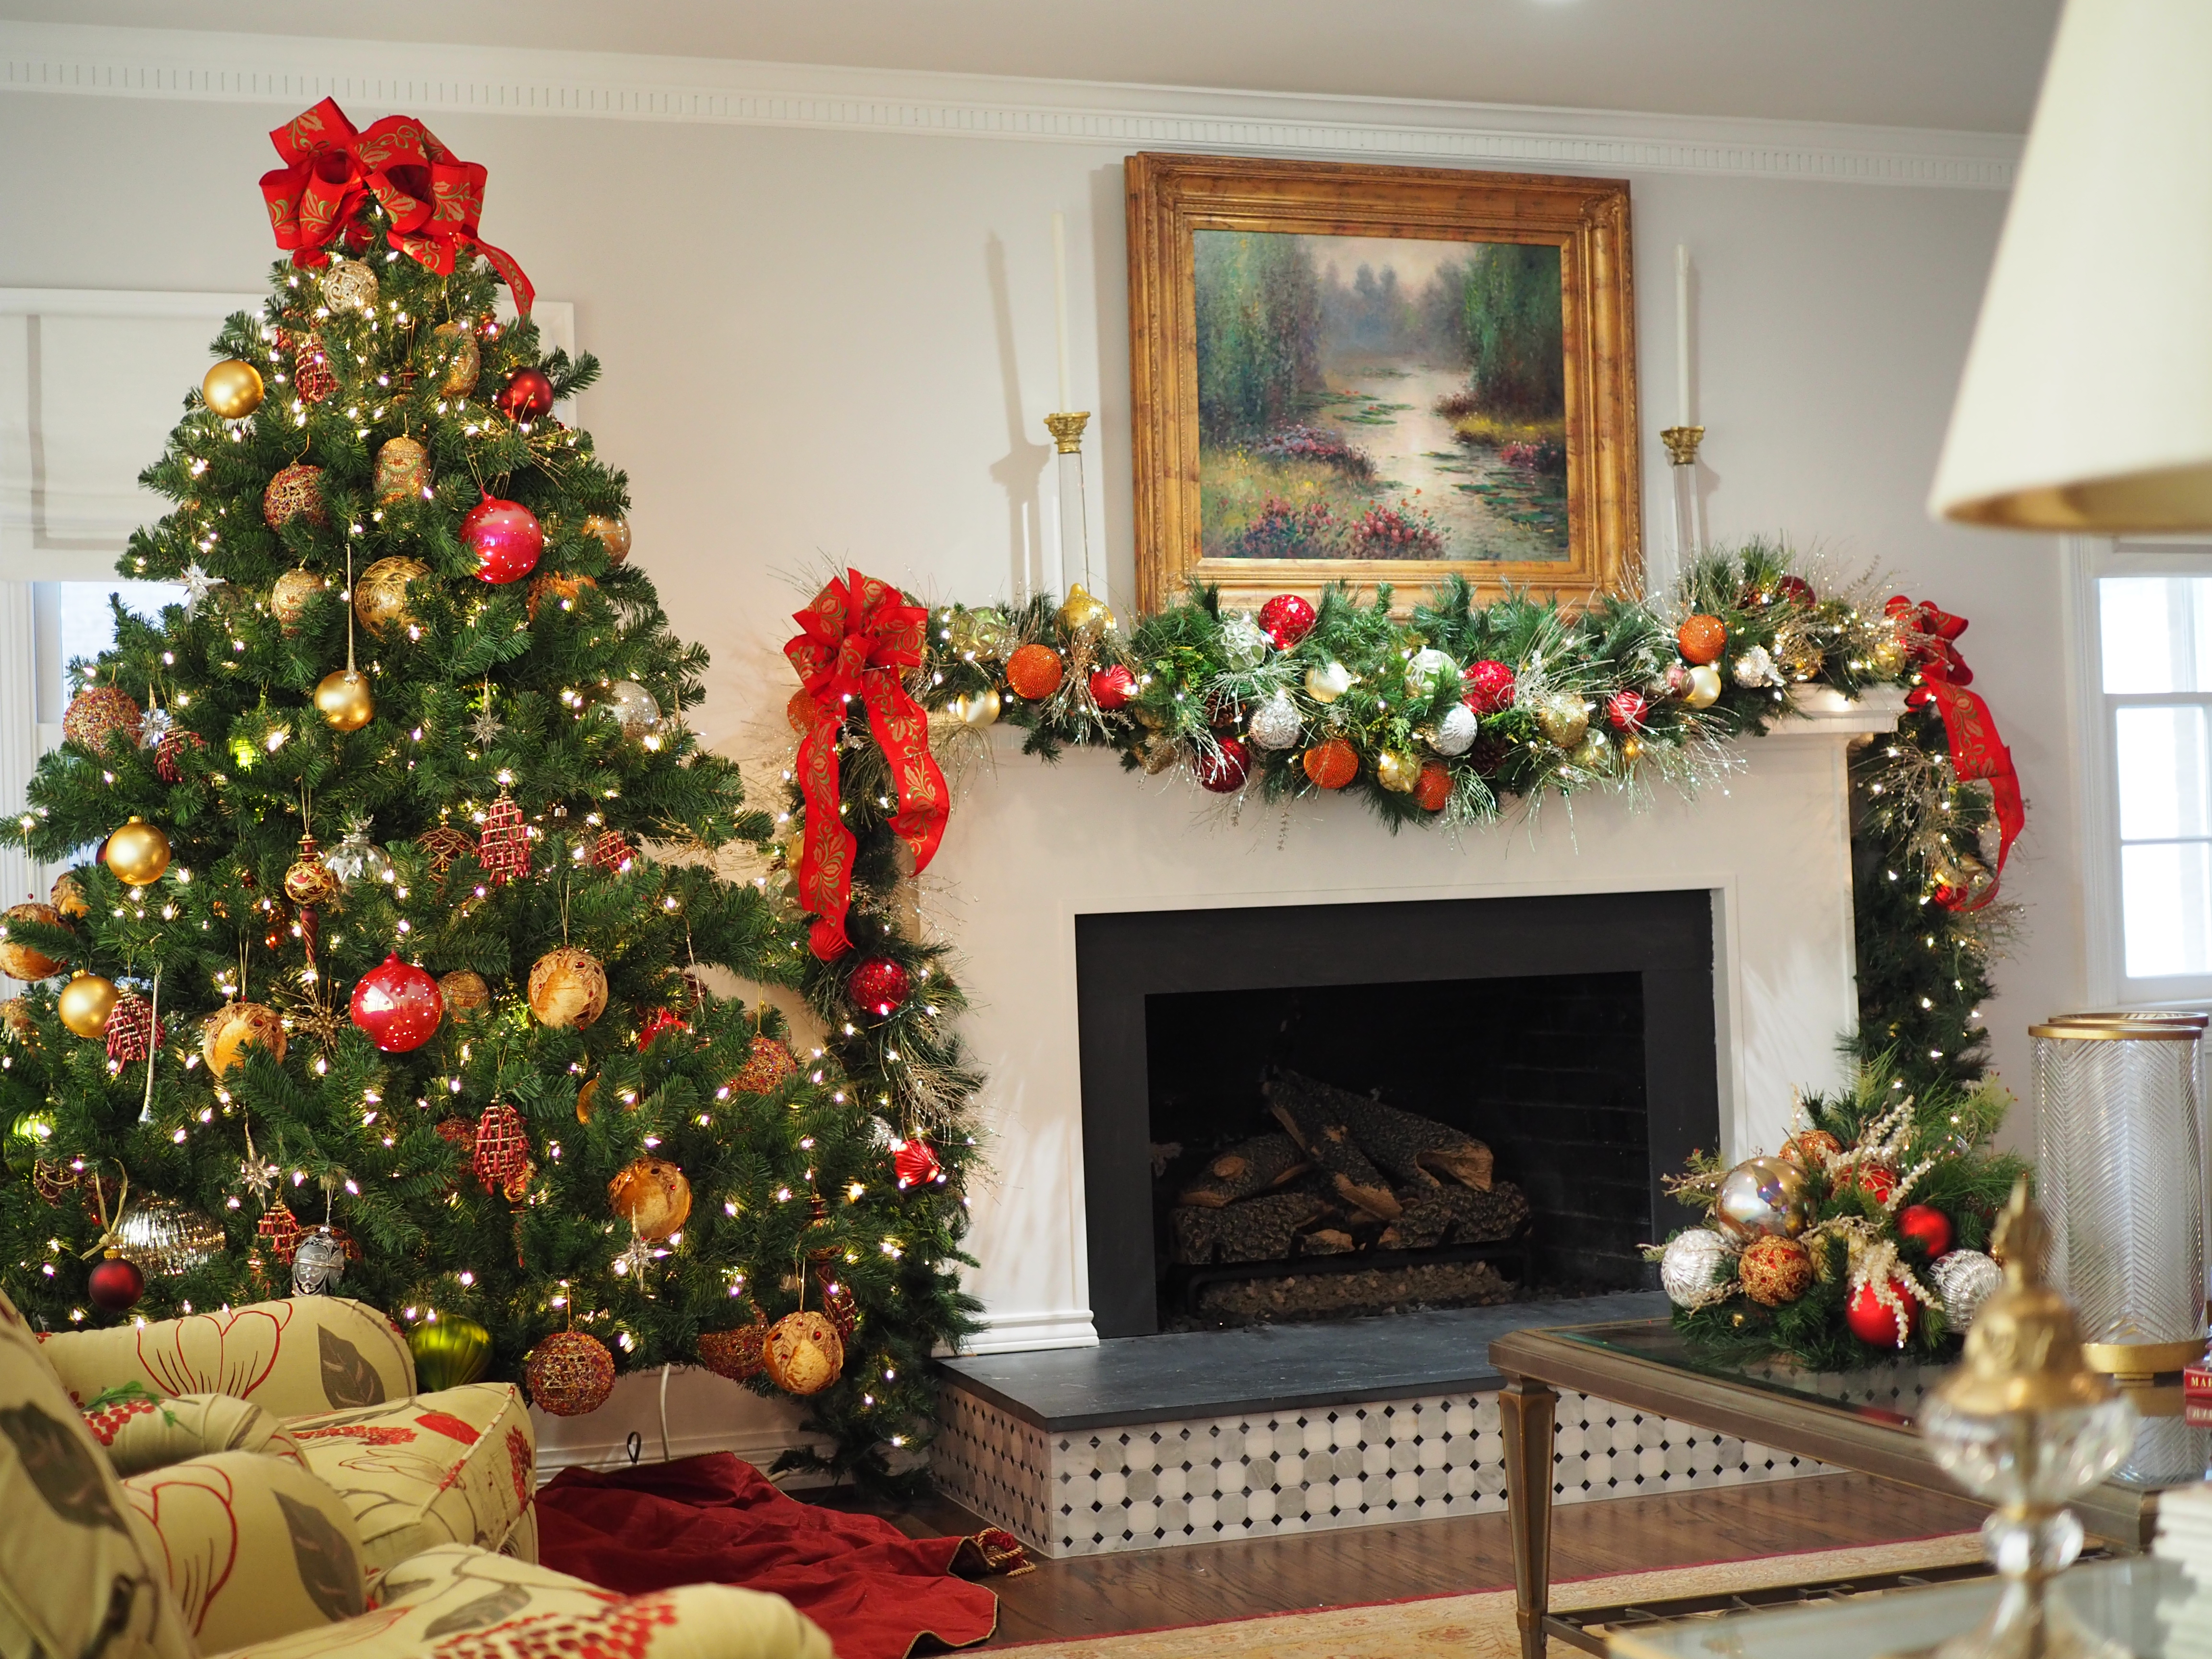 Tree and Mantle Garland